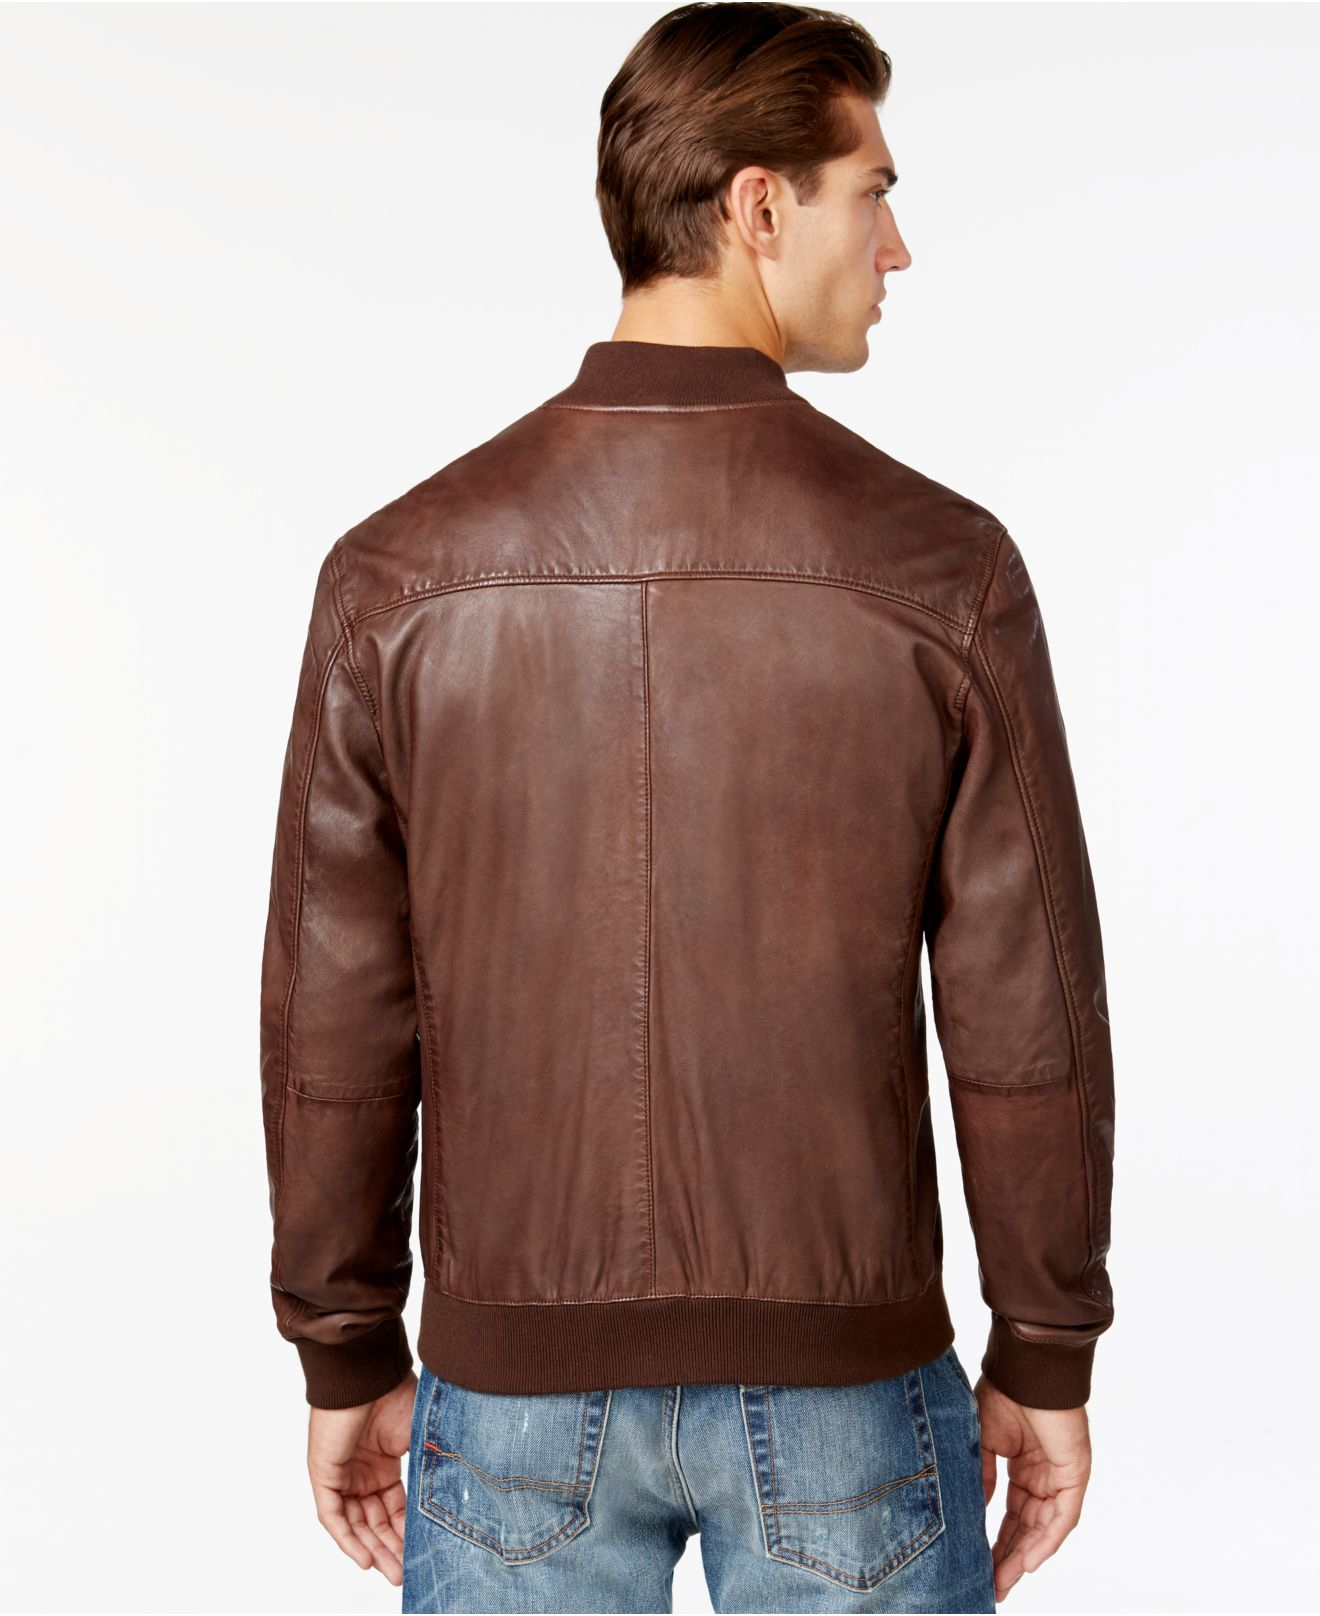 Brand leather jacket